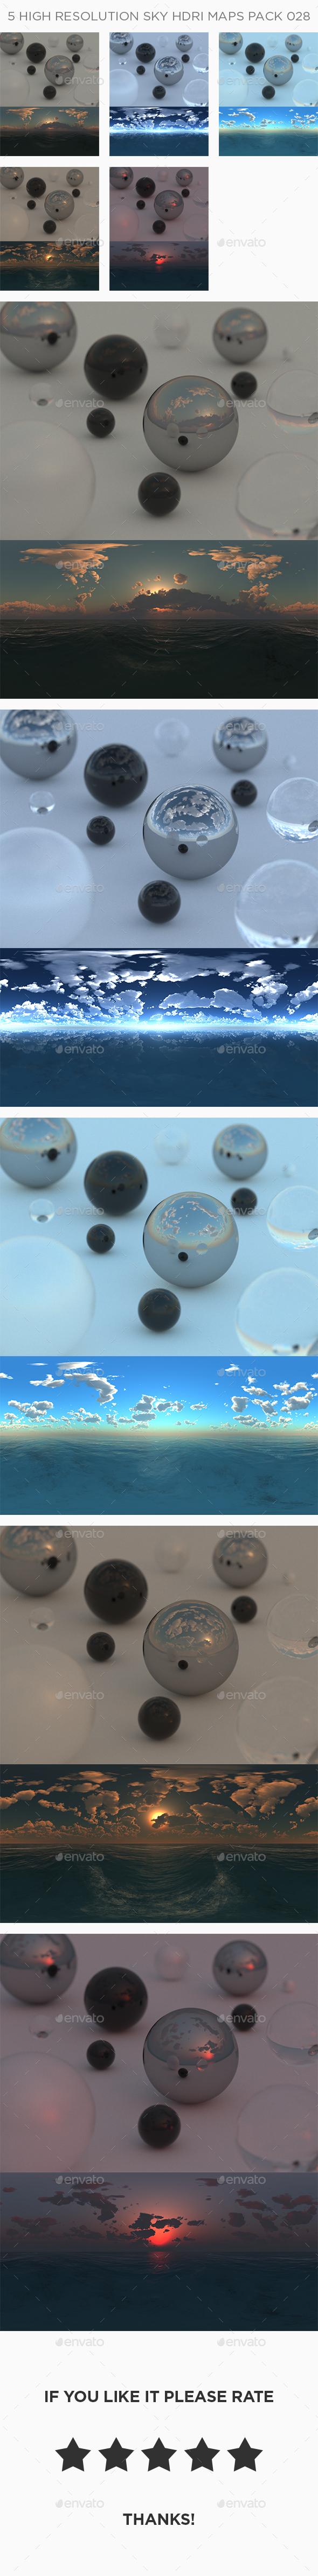 5 High Resolution Sky HDRi Maps Pack 028 - 3DOcean Item for Sale